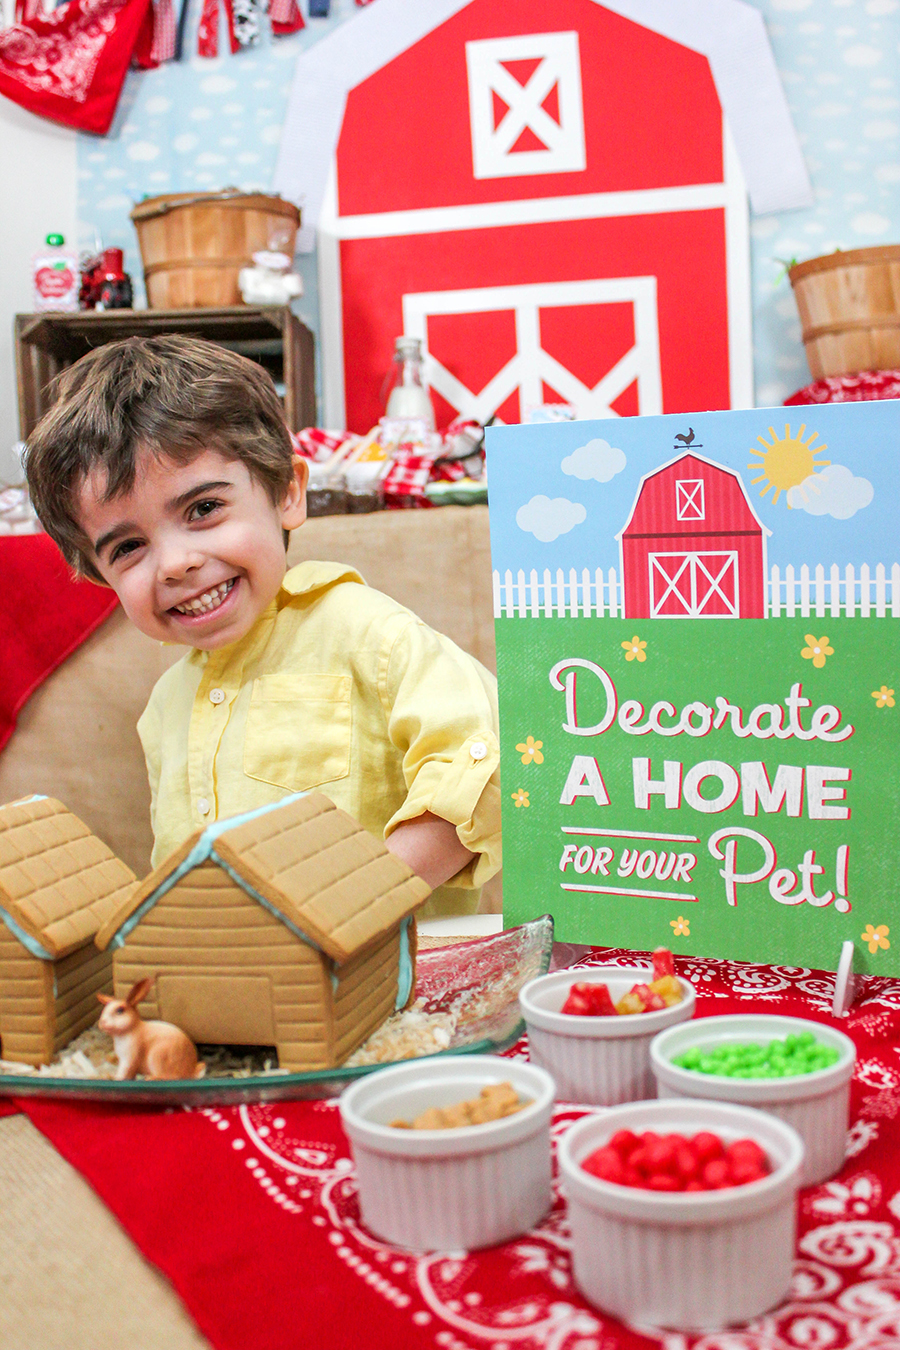 Farm party, farm party ideas, Schleich, farm, party ideas, partnership, printables, free printables, playdoh carrots, adopt an animal, adoption certificate, oink, moo, cock-a-doodle doo, decorate a home for your pet, gingerbread house, donut tractor, pig sty pudding, farm animals, creative food, farm food, Just Add Confetti,